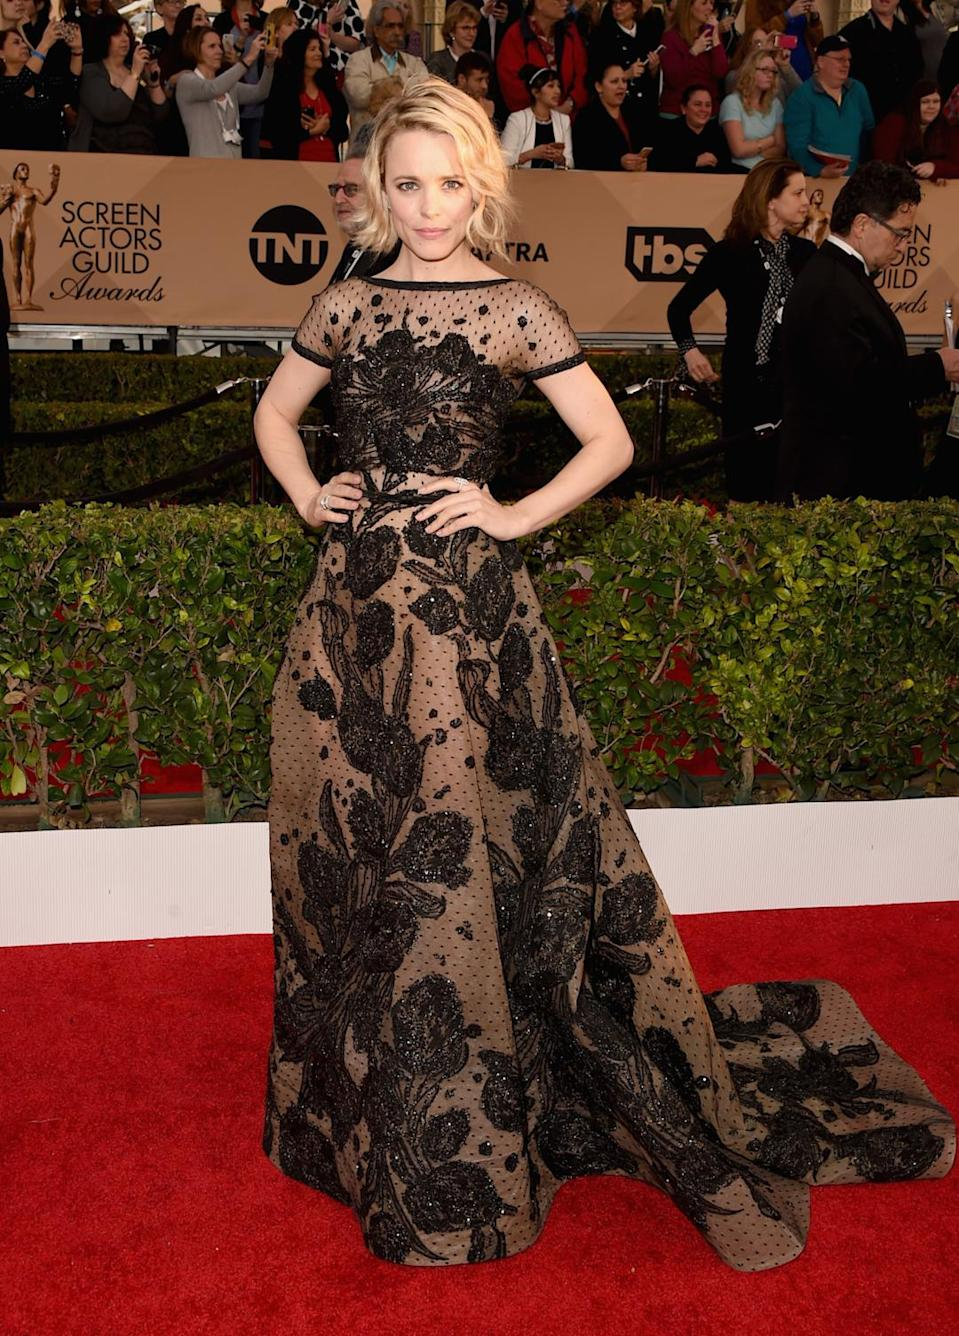 <p>Rachel McAdams looked lovely in an Elie Saab haute couture gown with swiss dot sheer details and floral embellishment. <i>Photo: Getty Images</i></p>